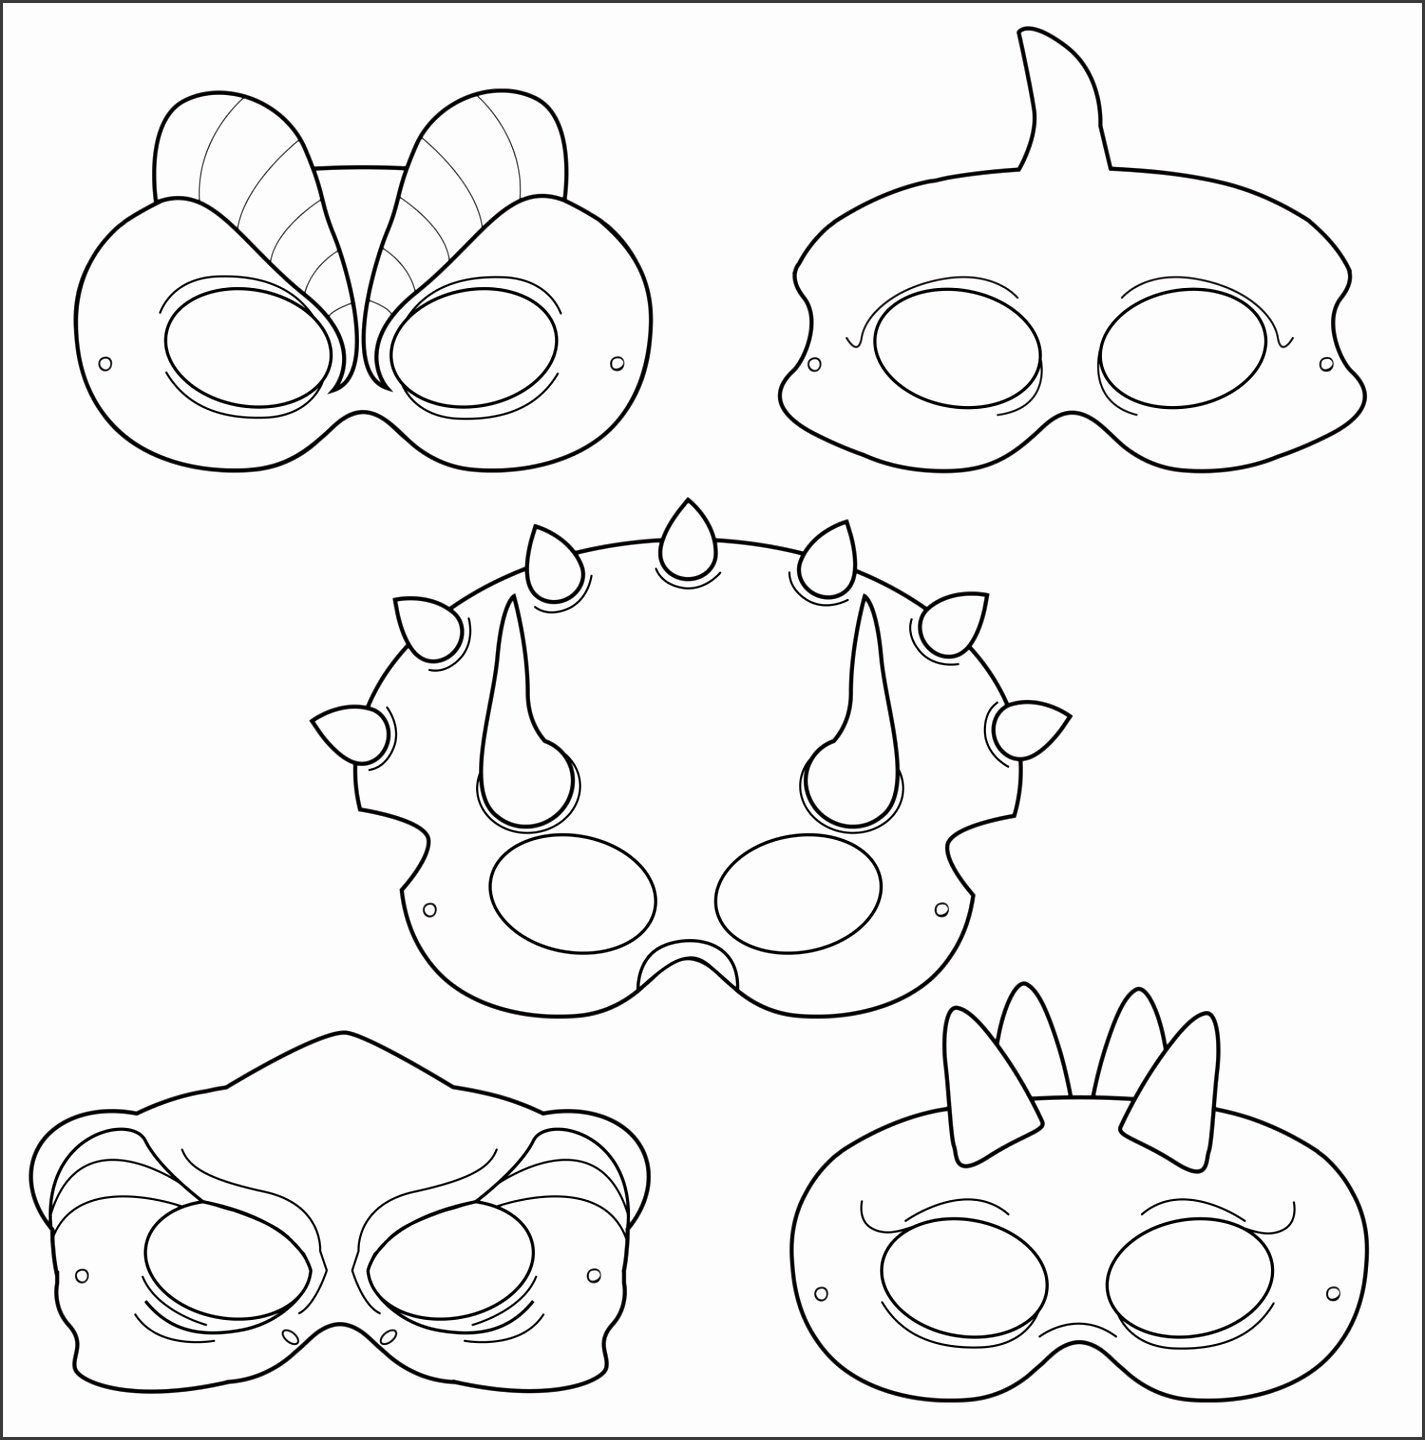 Best s Dinosaur Mask Template Dinosaur Mask Template Printable Dinosaur Masks Post Dinosaur Mask